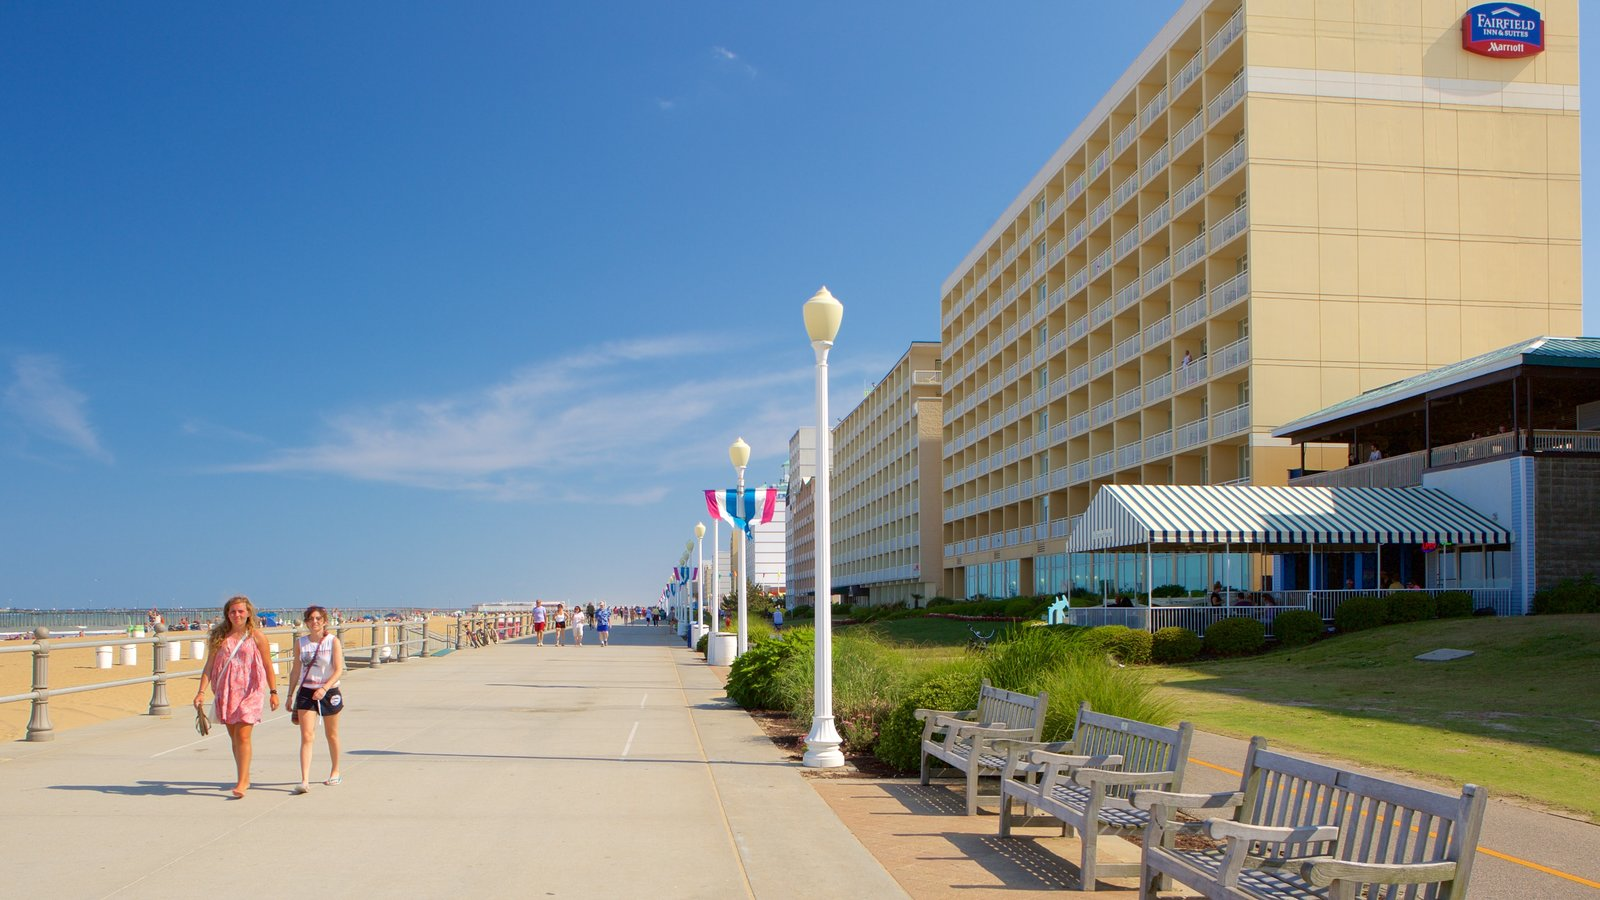 Virginia Beach Boardwalk Showing General Coastal Views And A Hotel